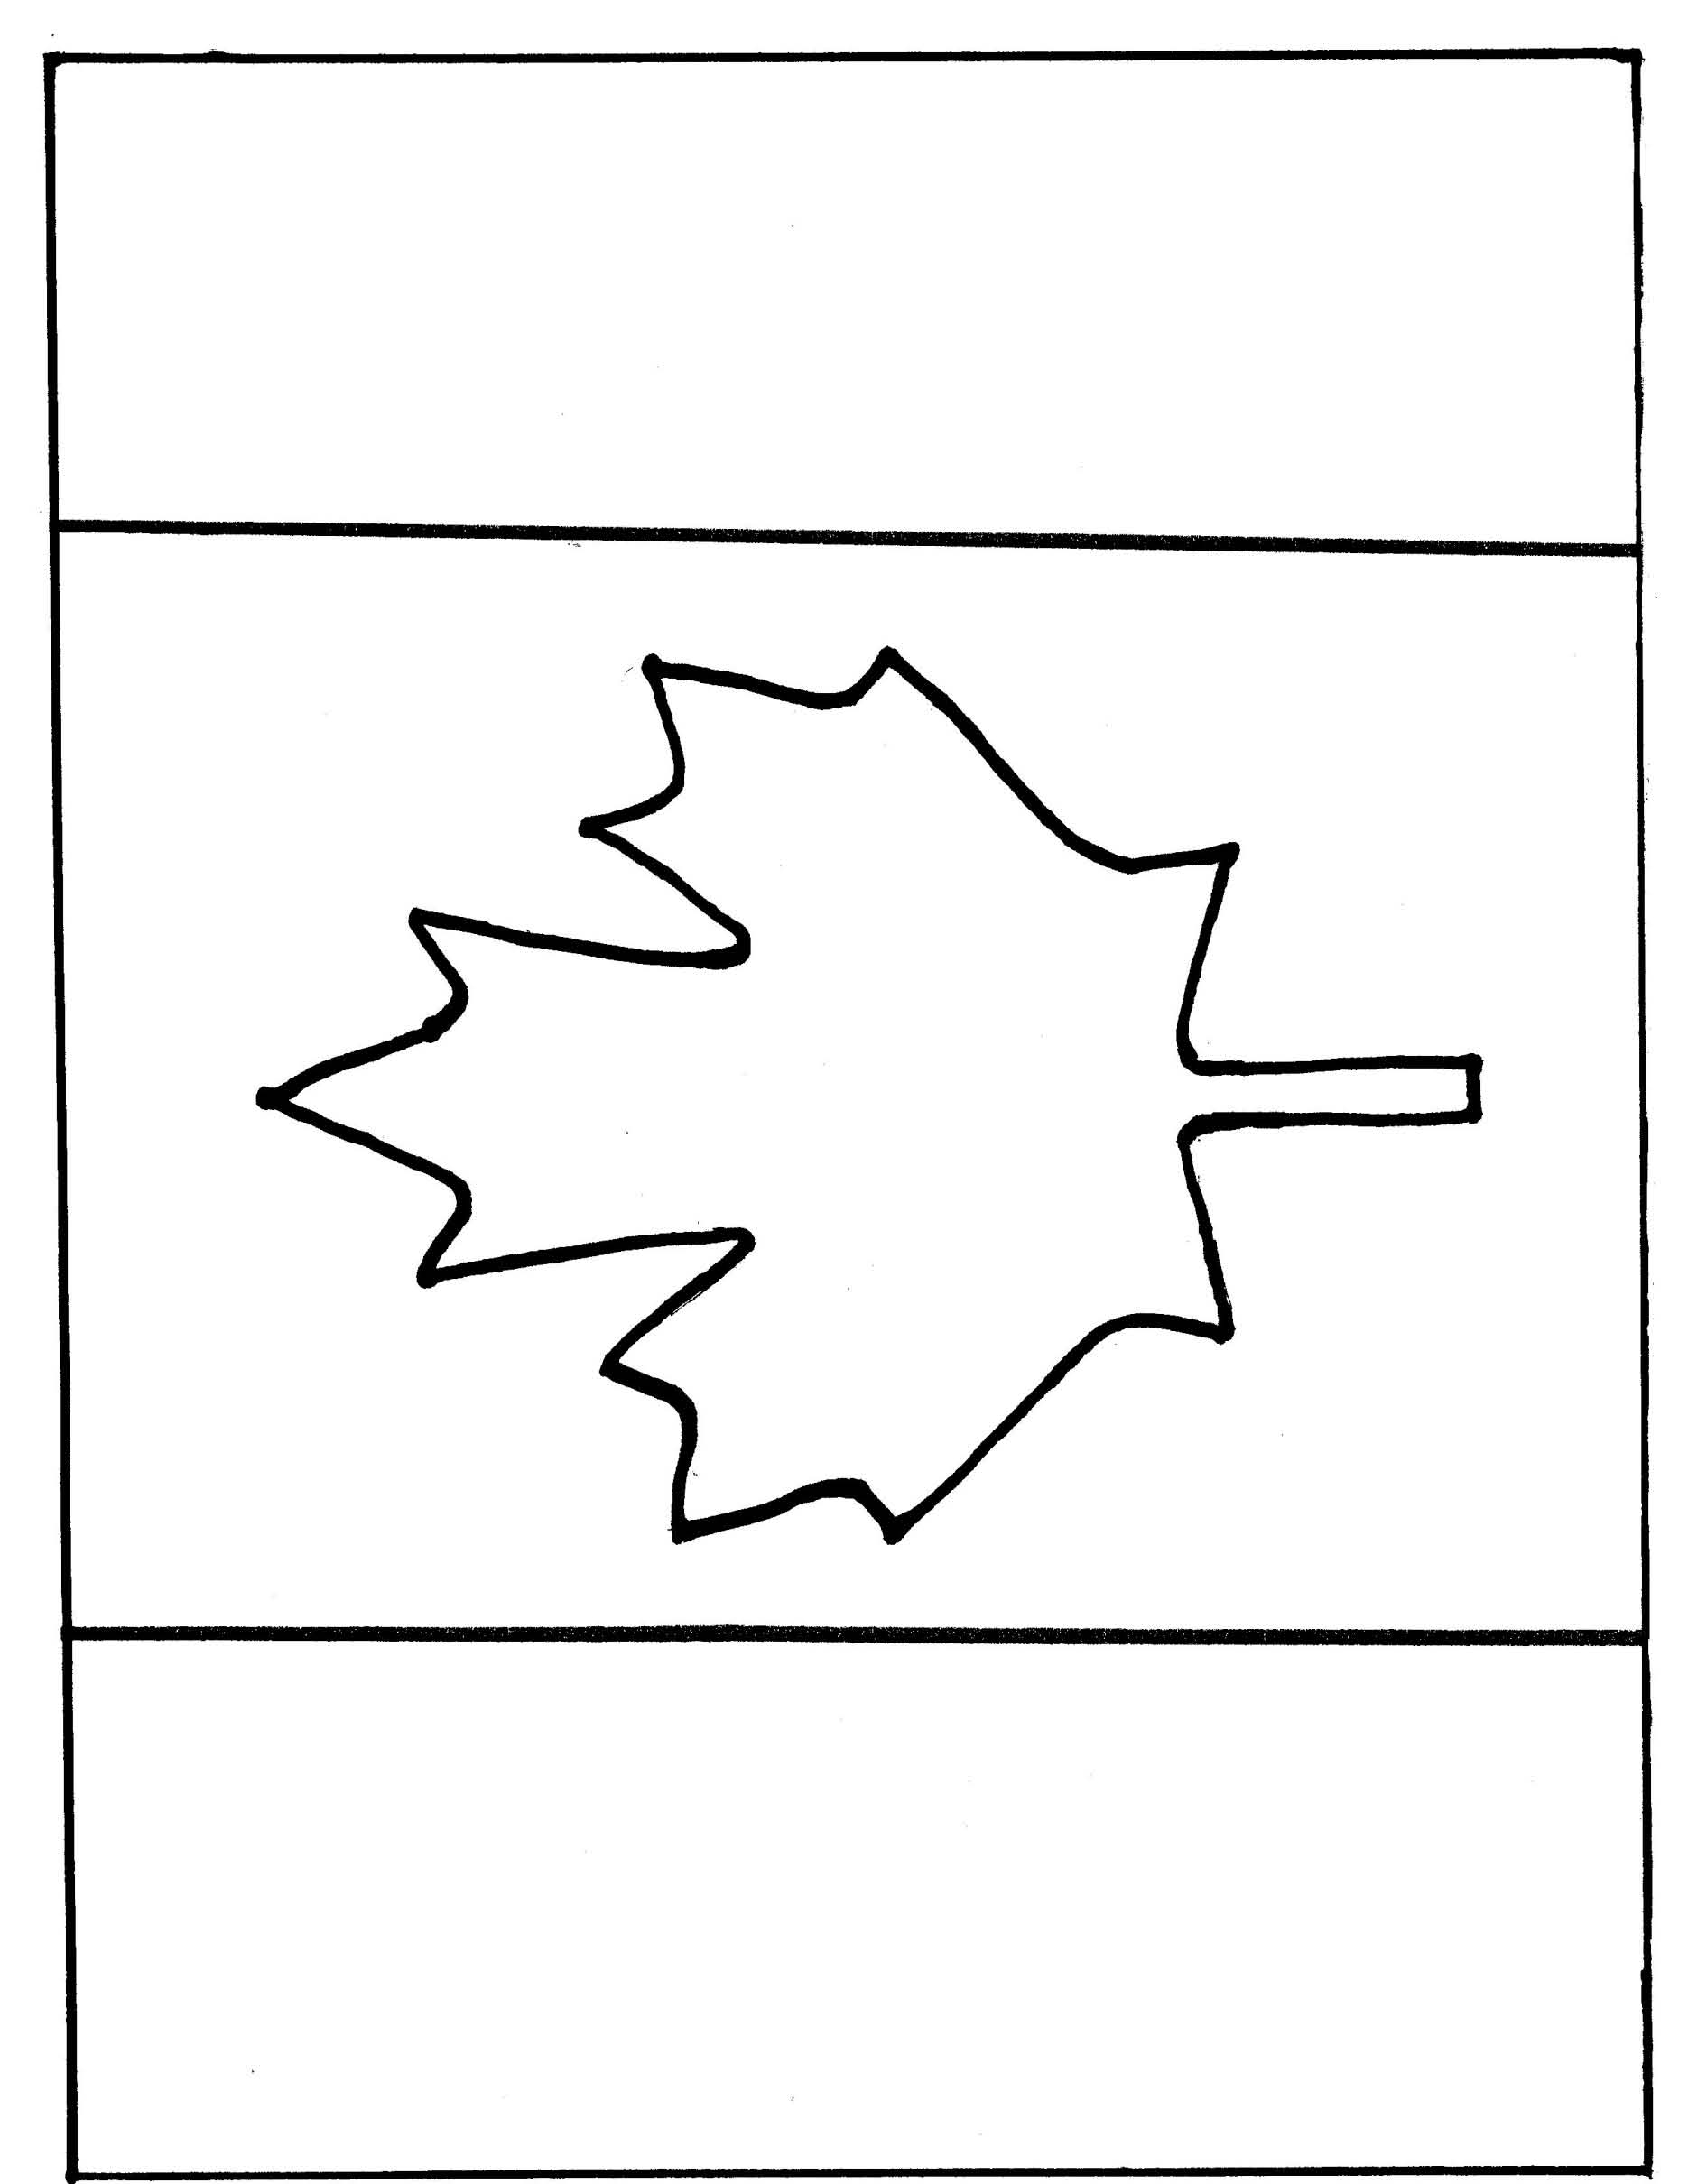 printable canadian flag coloring pages - photo#30